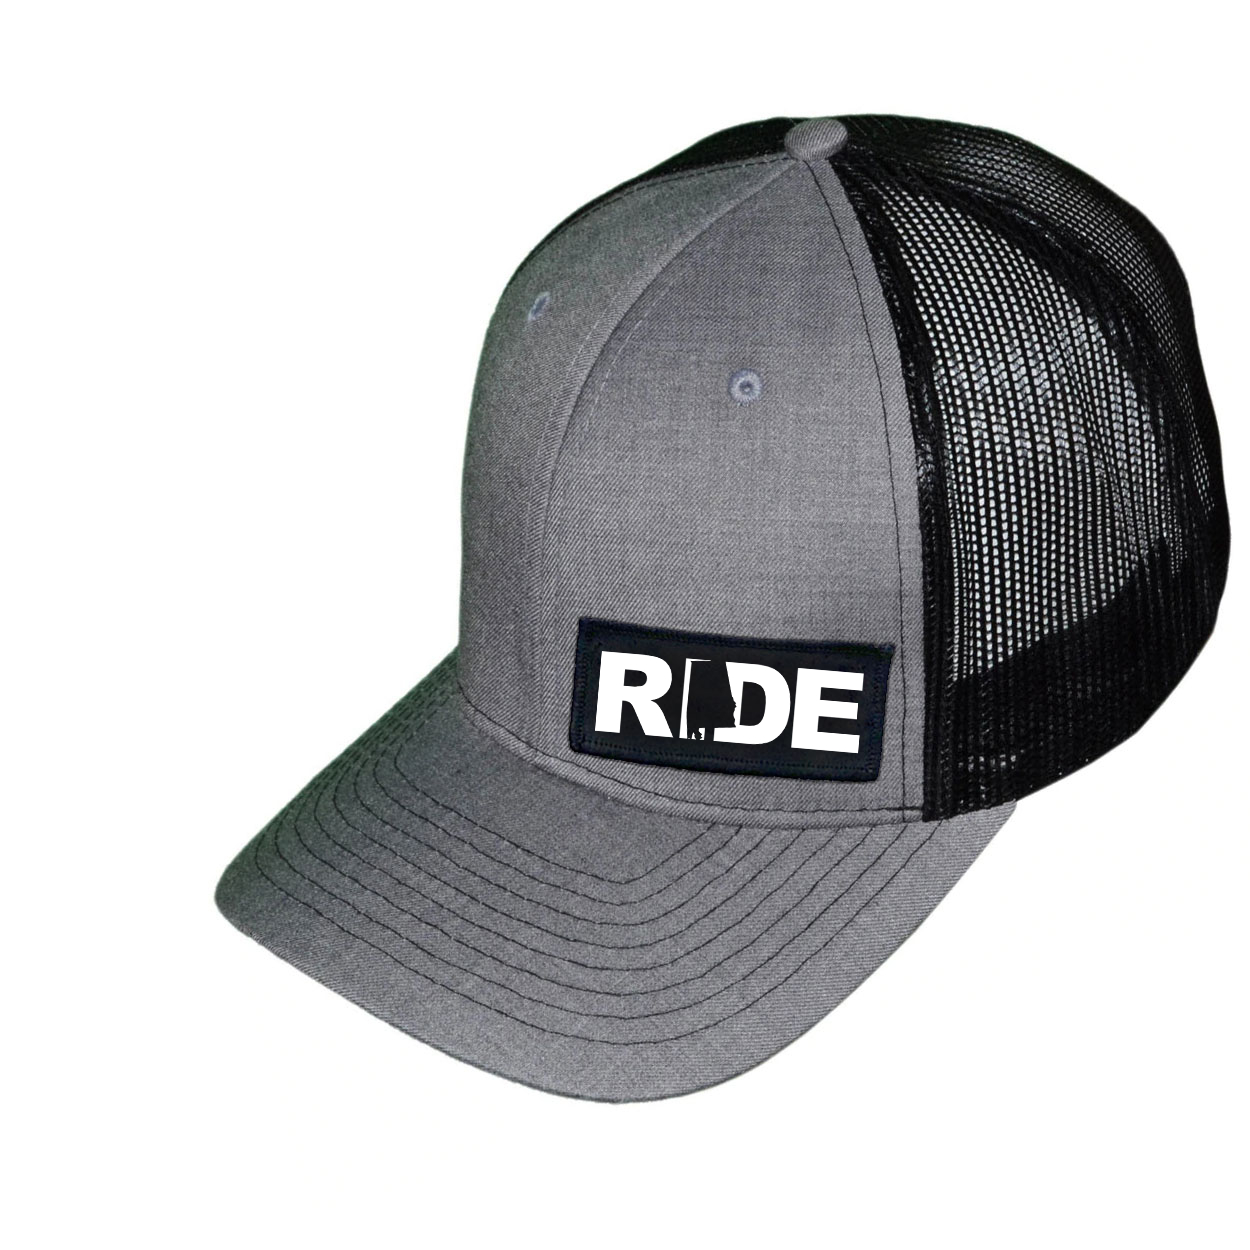 Ride Alabama Night Out Woven Patch Snapback Trucker Hat Heather Gray/Black (White Logo)